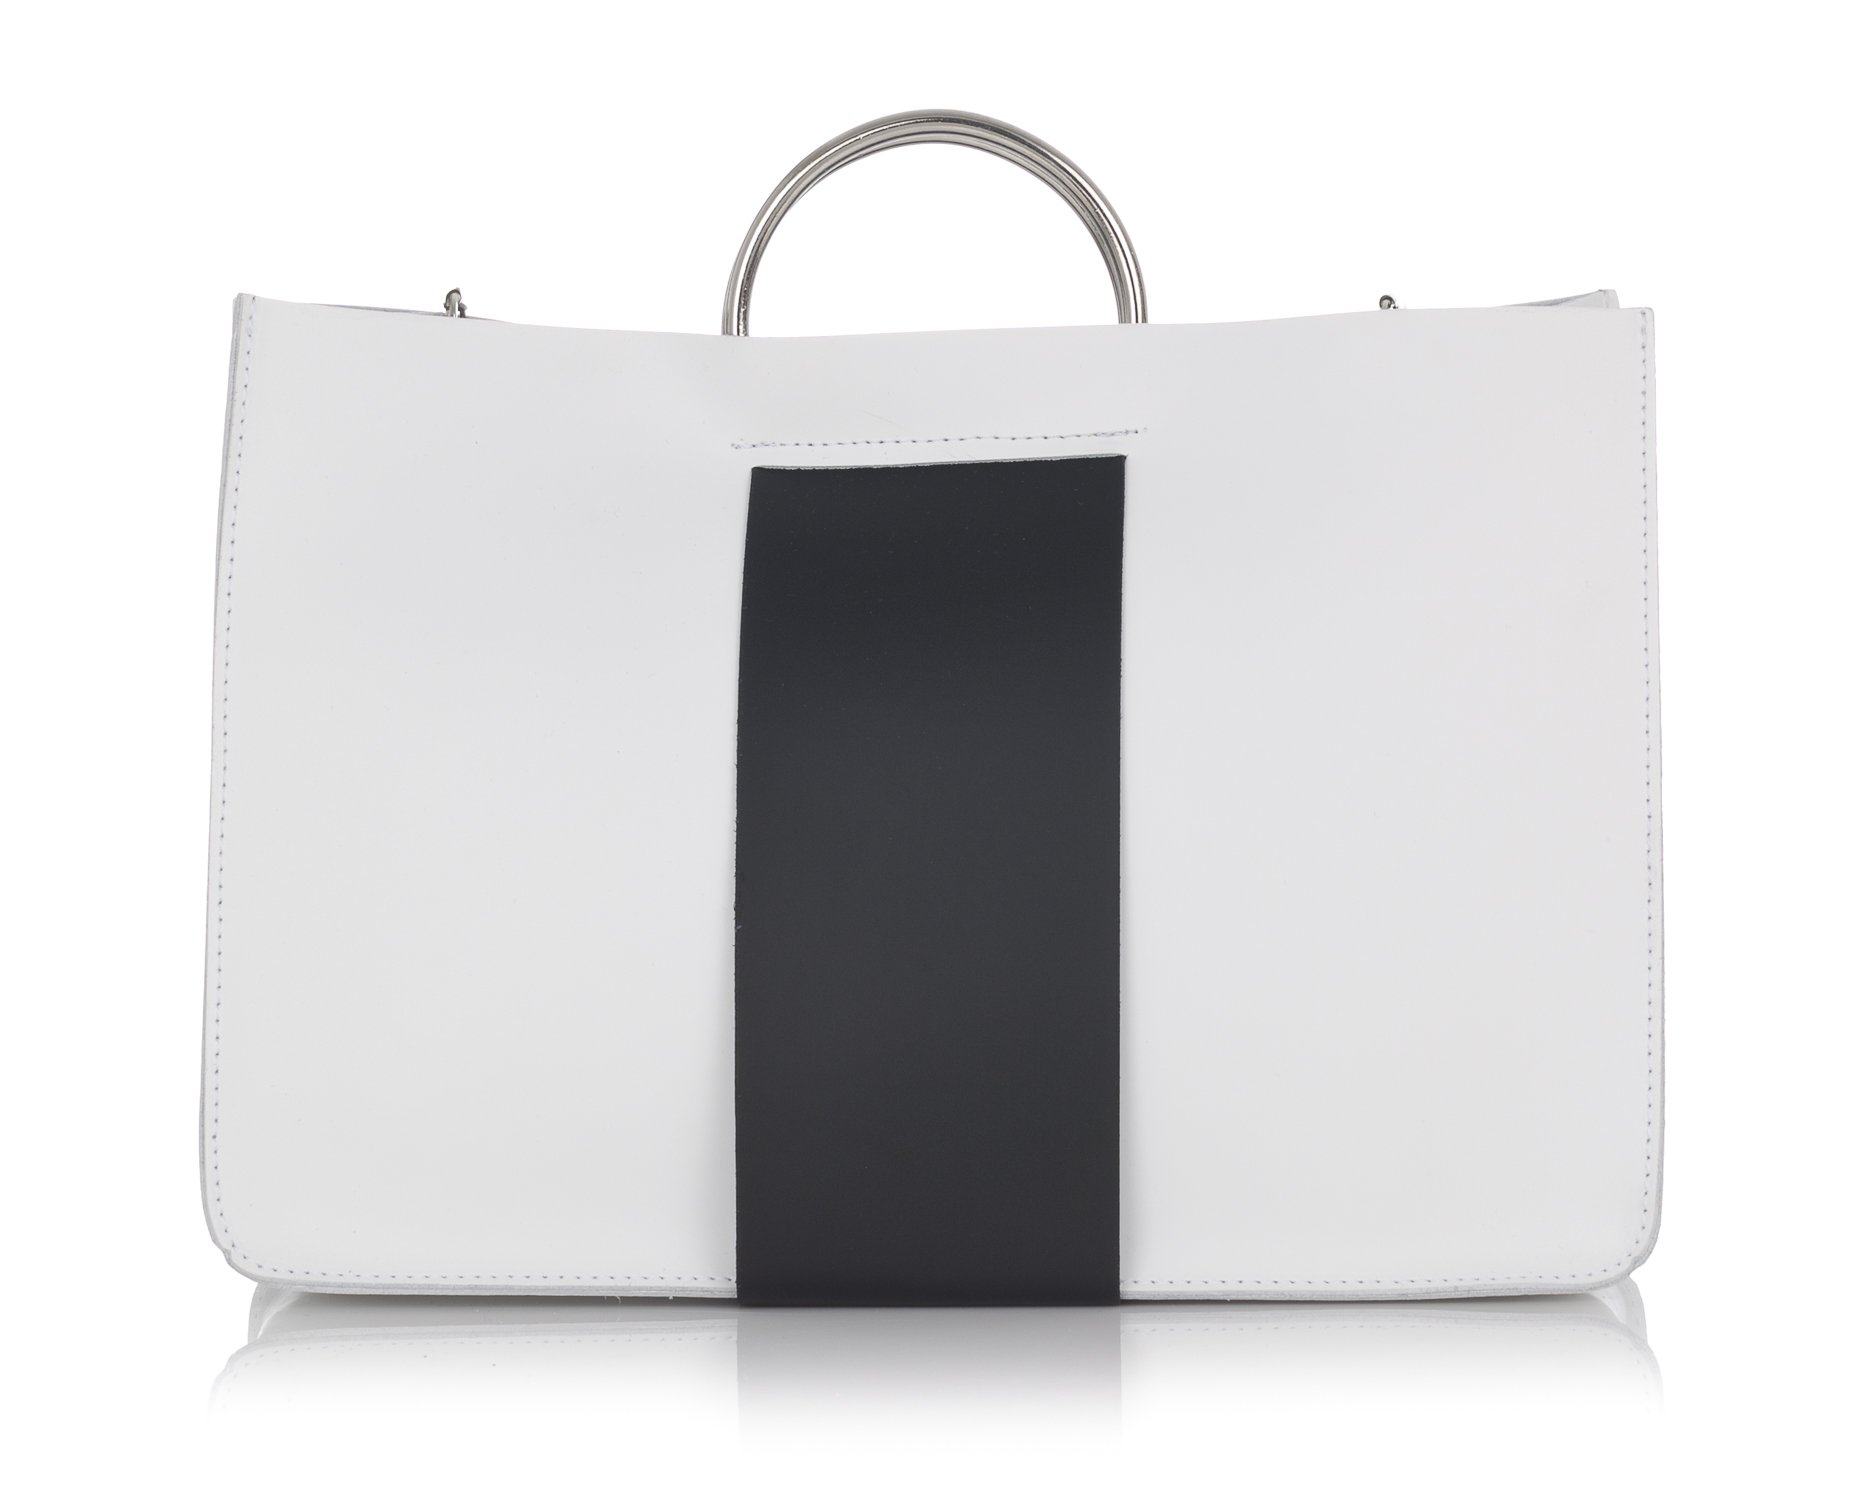 Laura Moretti - Leather bag with strip in the middle (HANDBAG style) by Laura Moretti